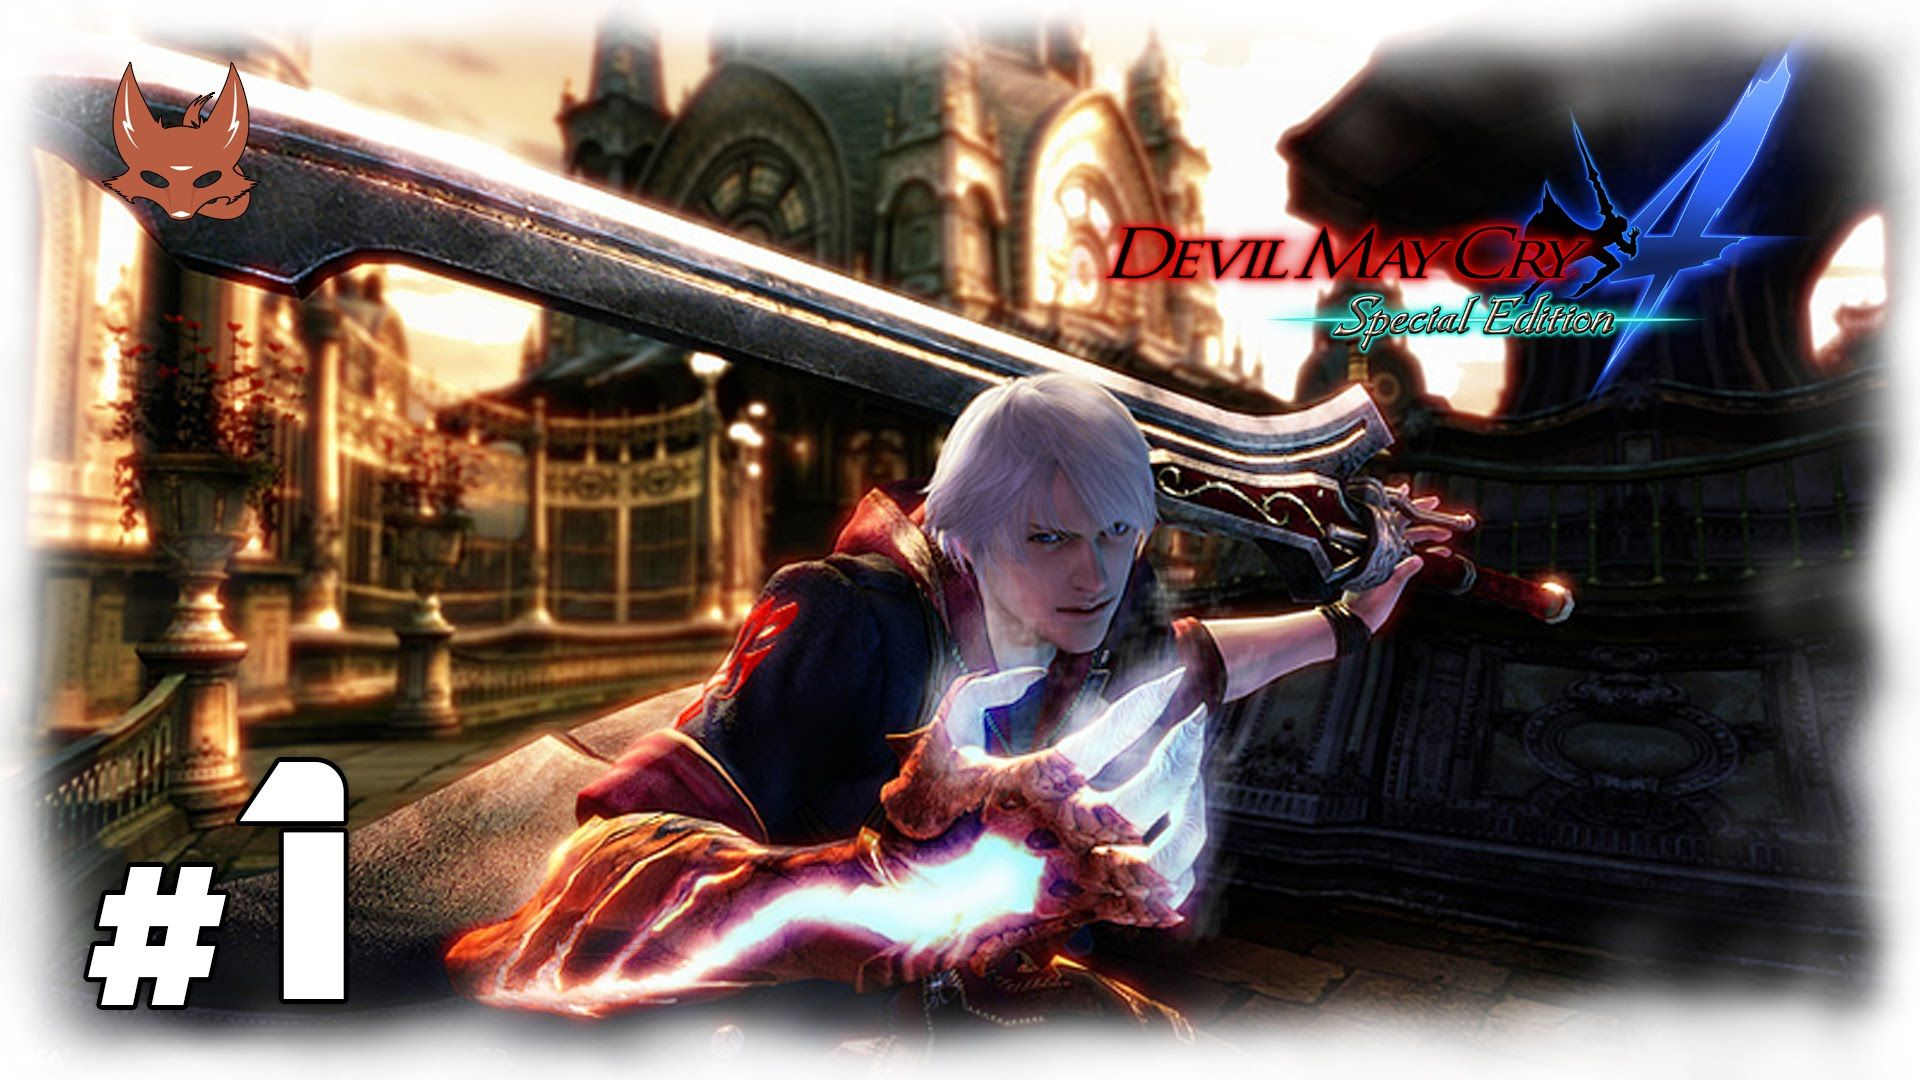 Devil May Cry 4 Special Edition Episodul 1 Altele Devil May